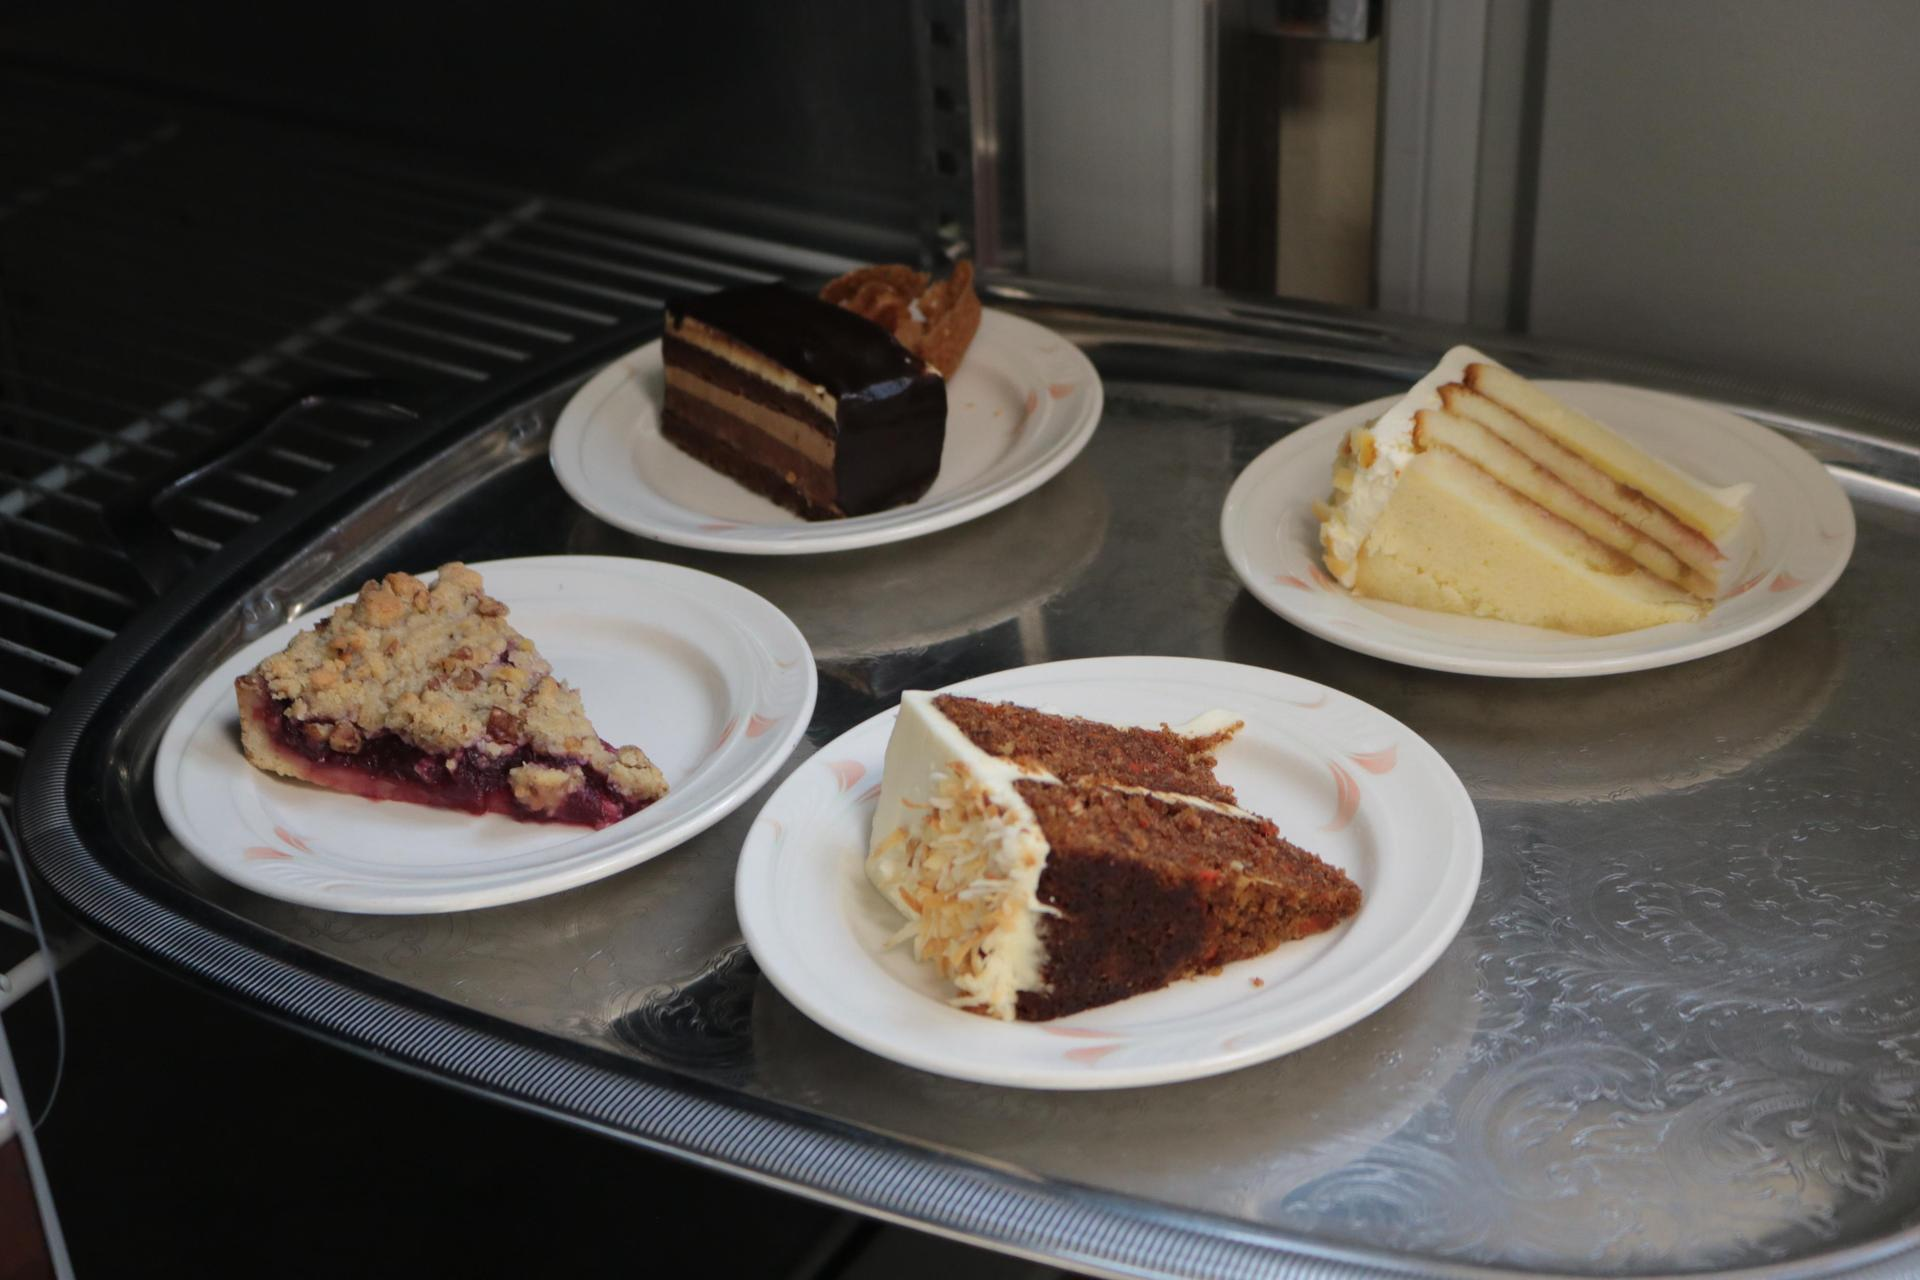 Four slices of cakes on plates